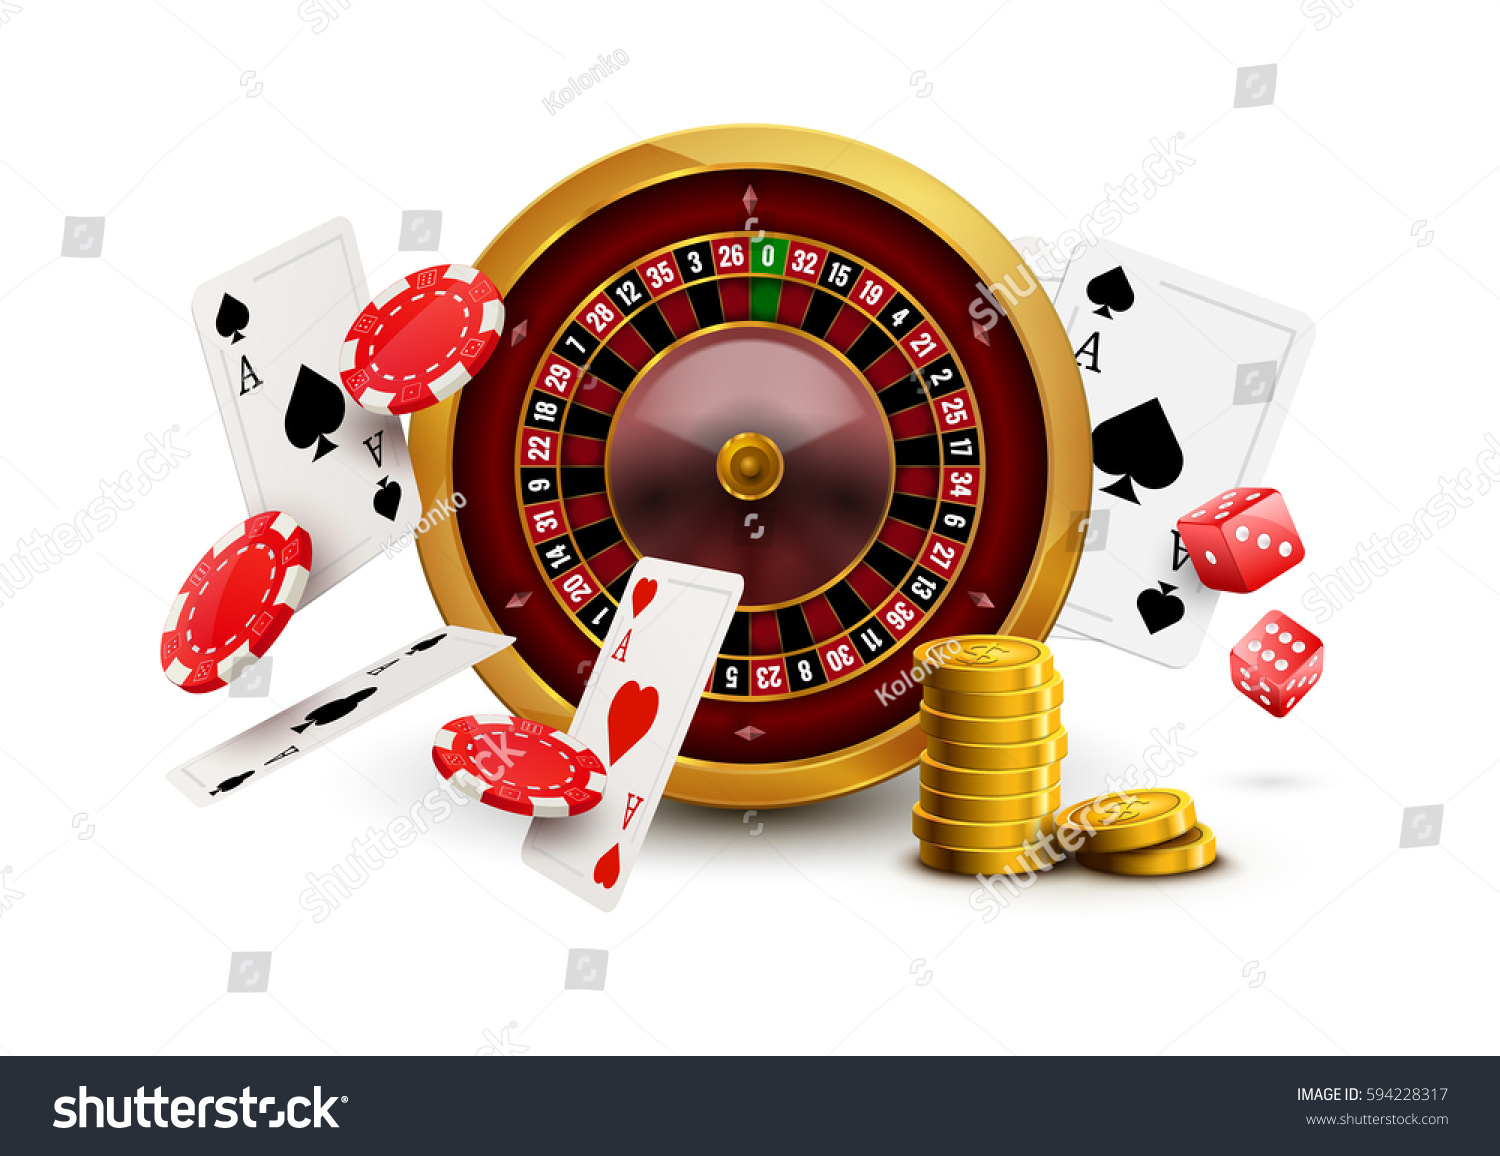 Roulette red 15 hack ban trau online